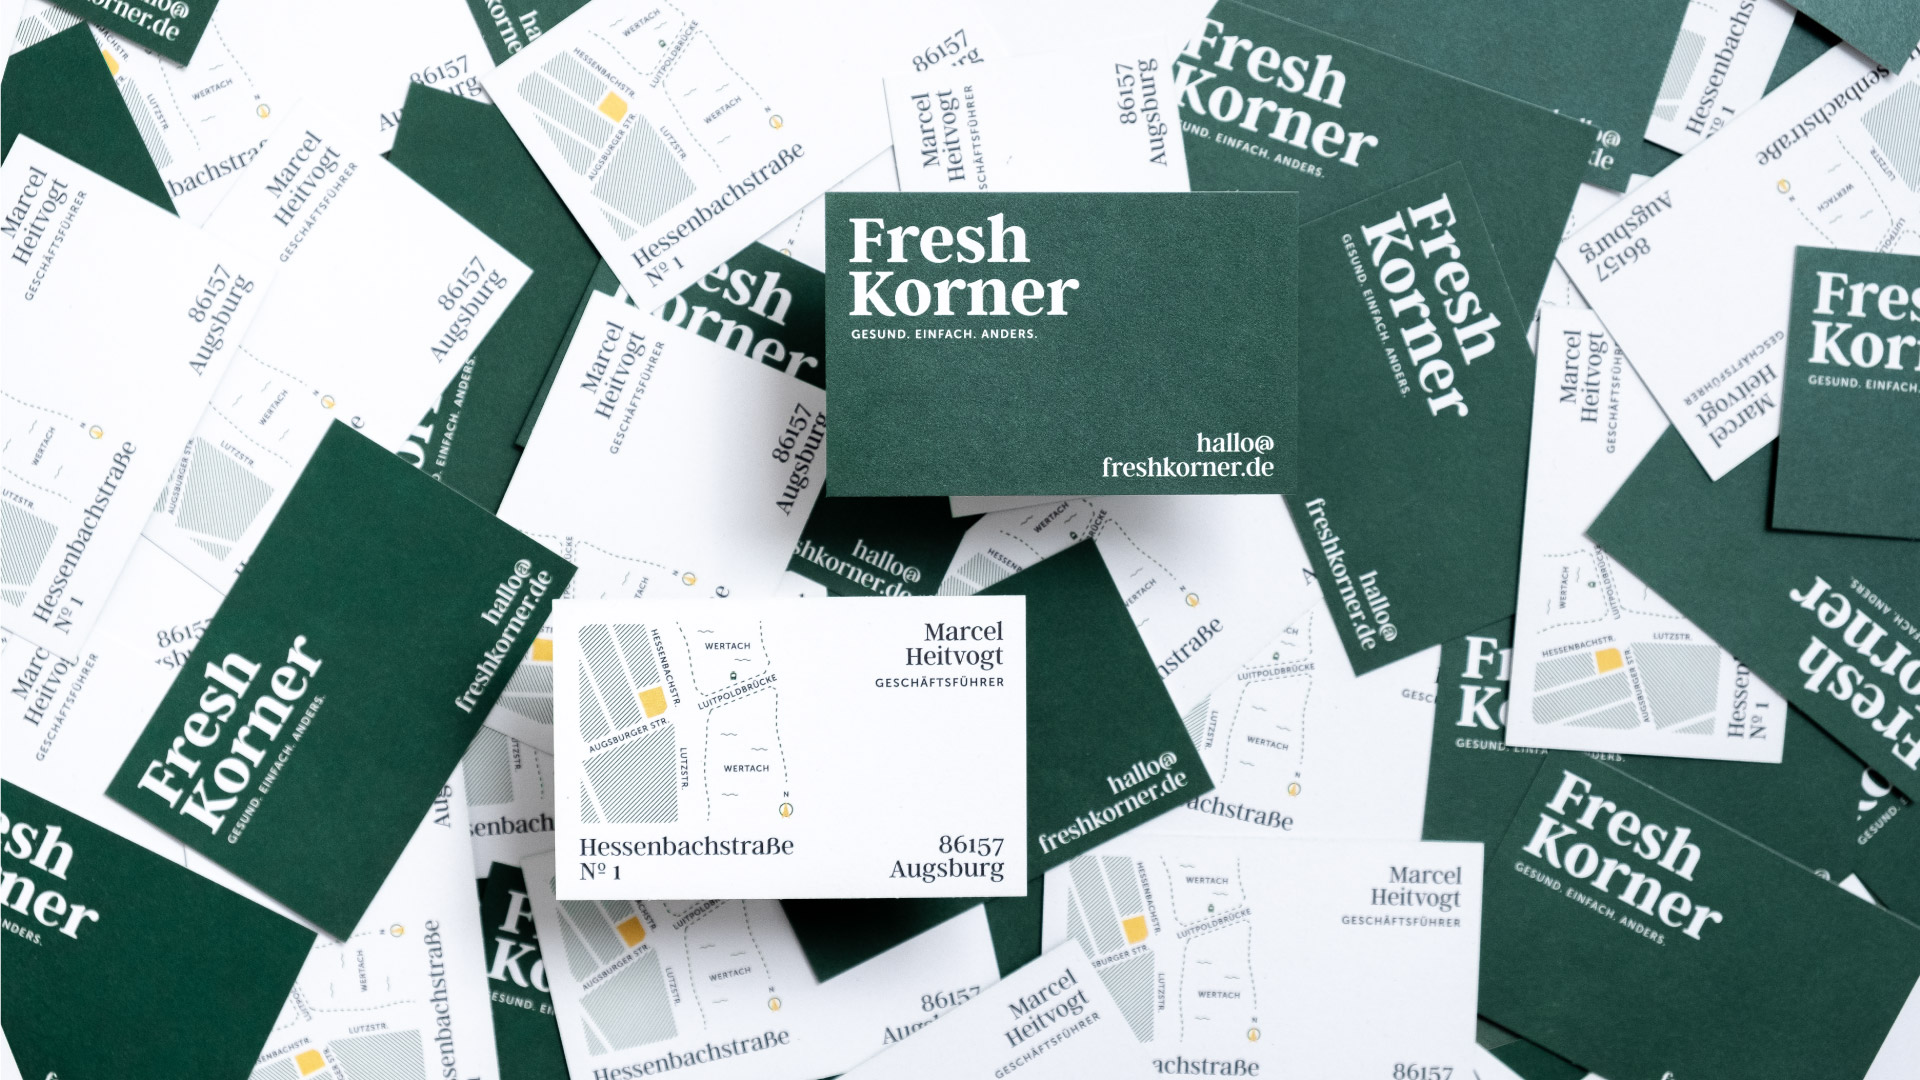 Endformat Designstudio. Design in Konstanz am Bodensee. Fresh Korner-Corporate Design